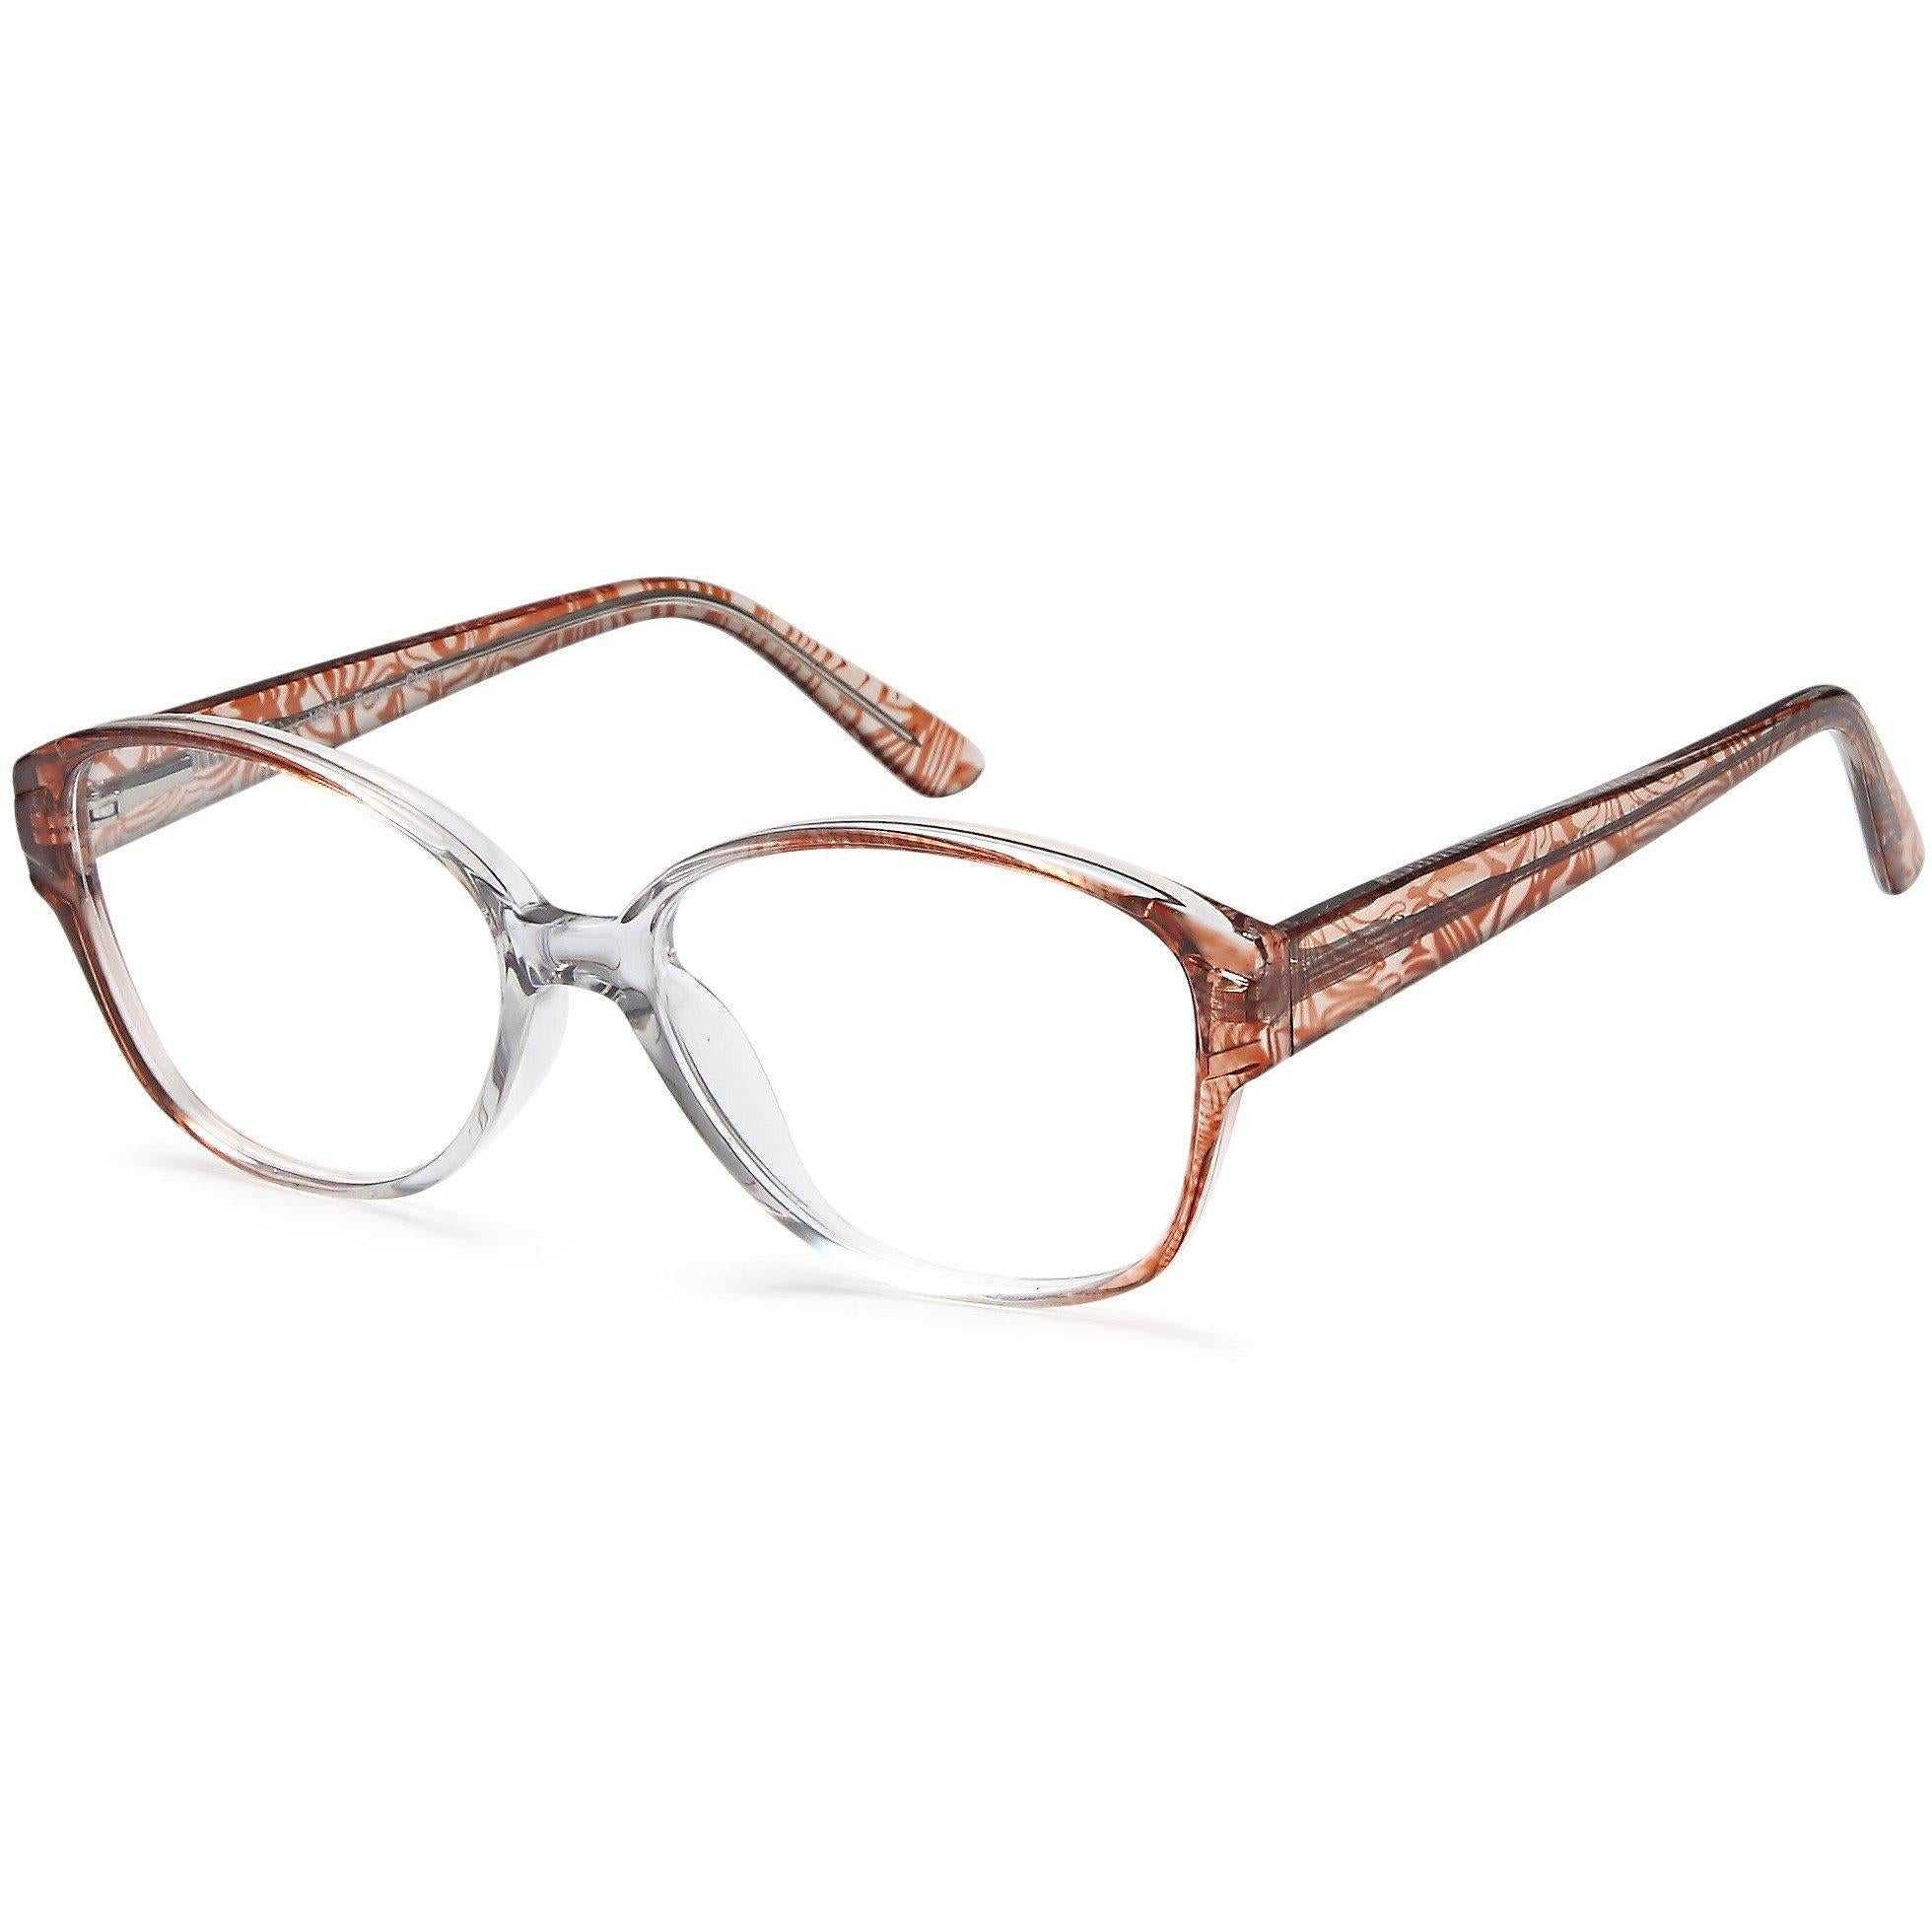 4U Prescription Glasses US 84 Optical Eyeglasses Frame - timetoshade